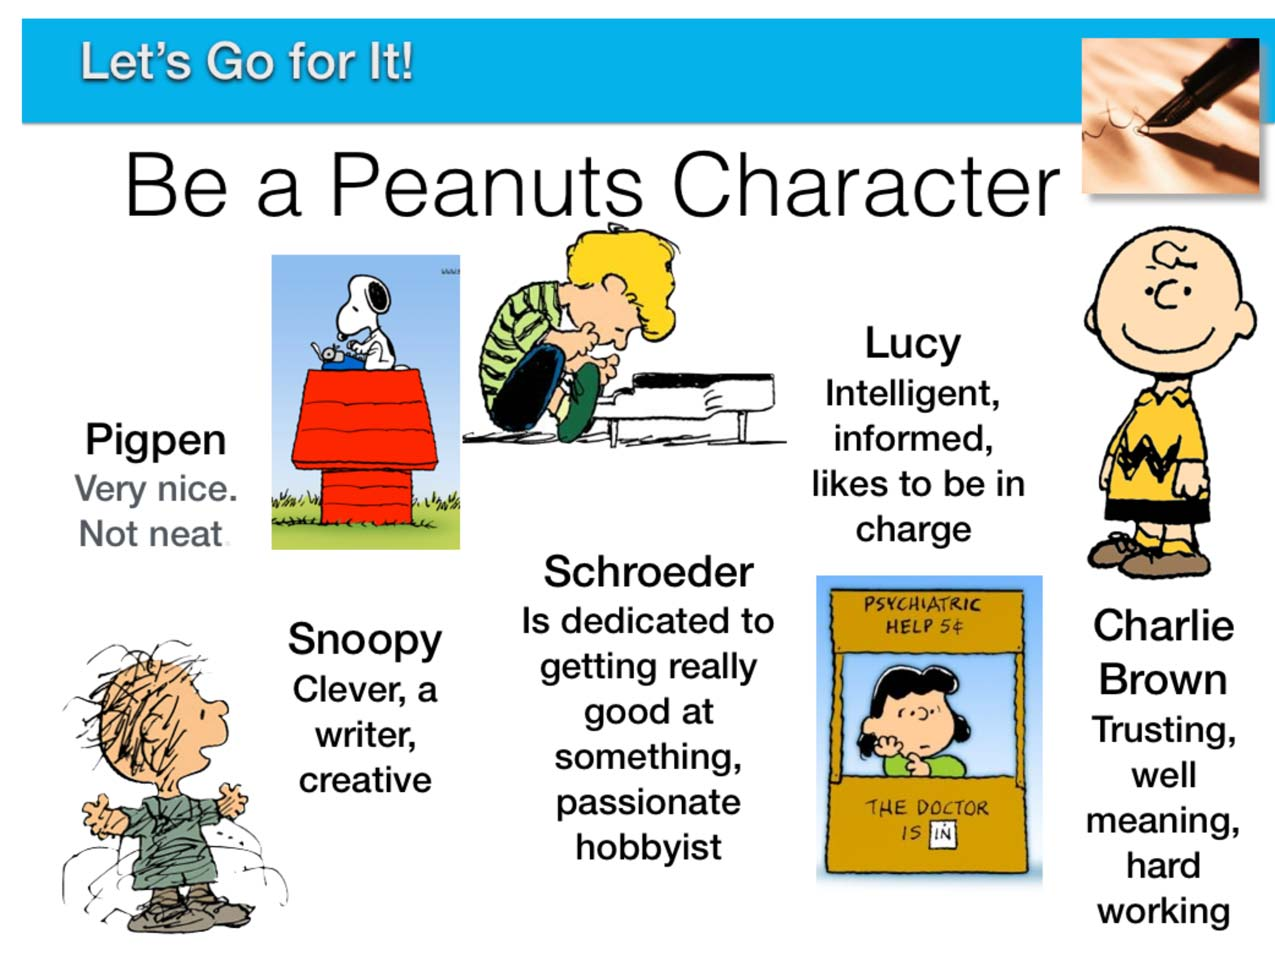 Be a Peanuts Character